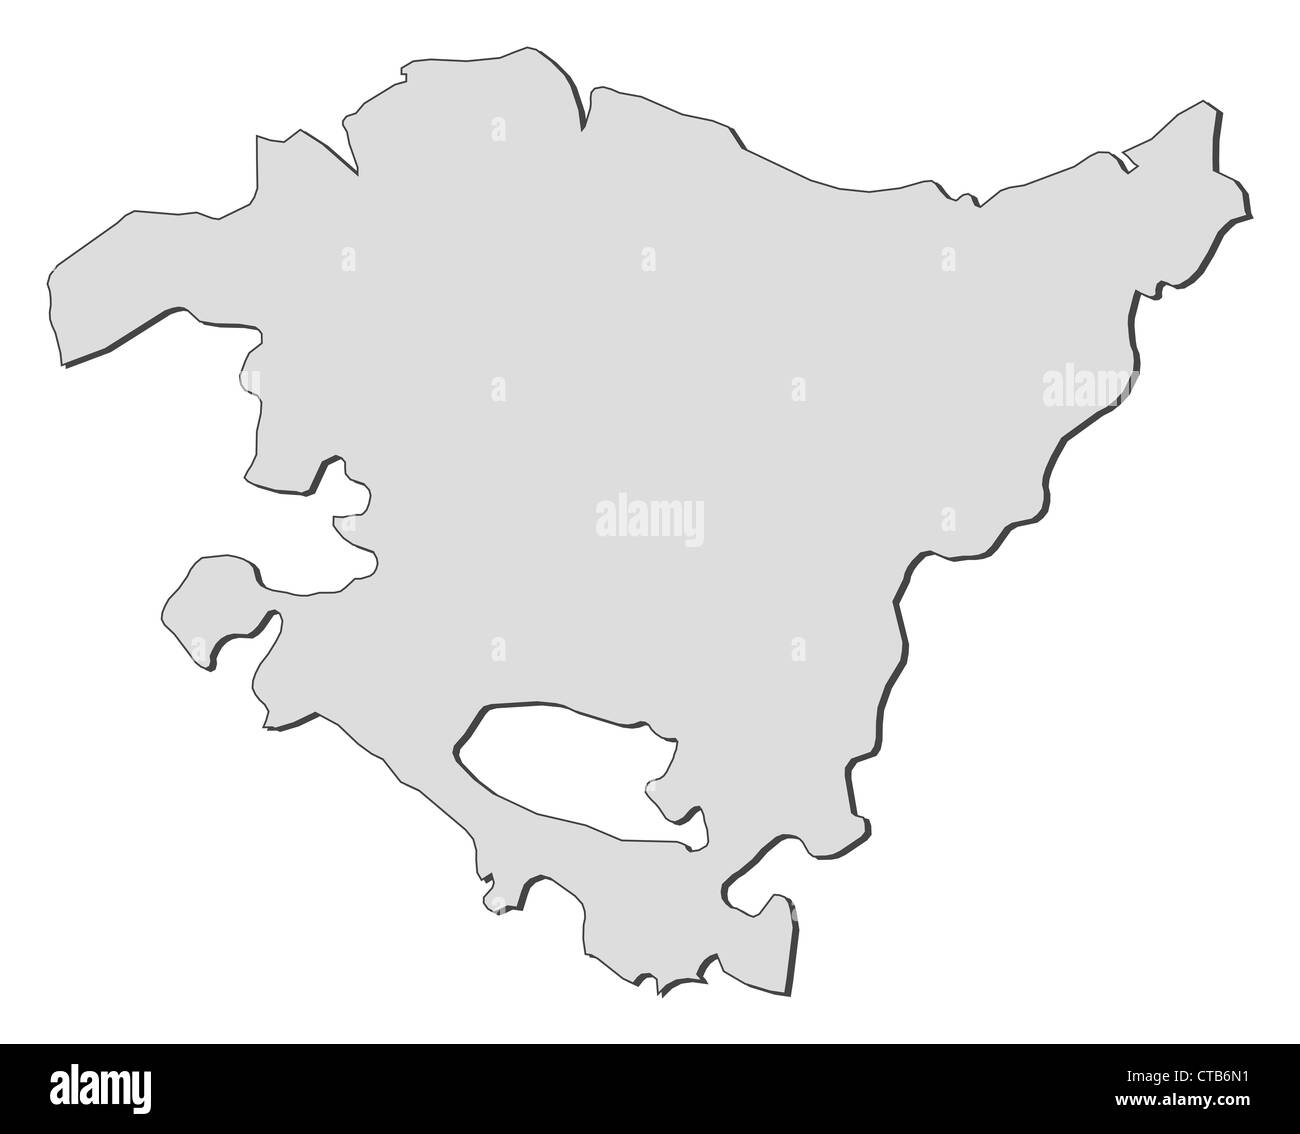 Pais Vasco Cut Out Stock Images Pictures Alamy